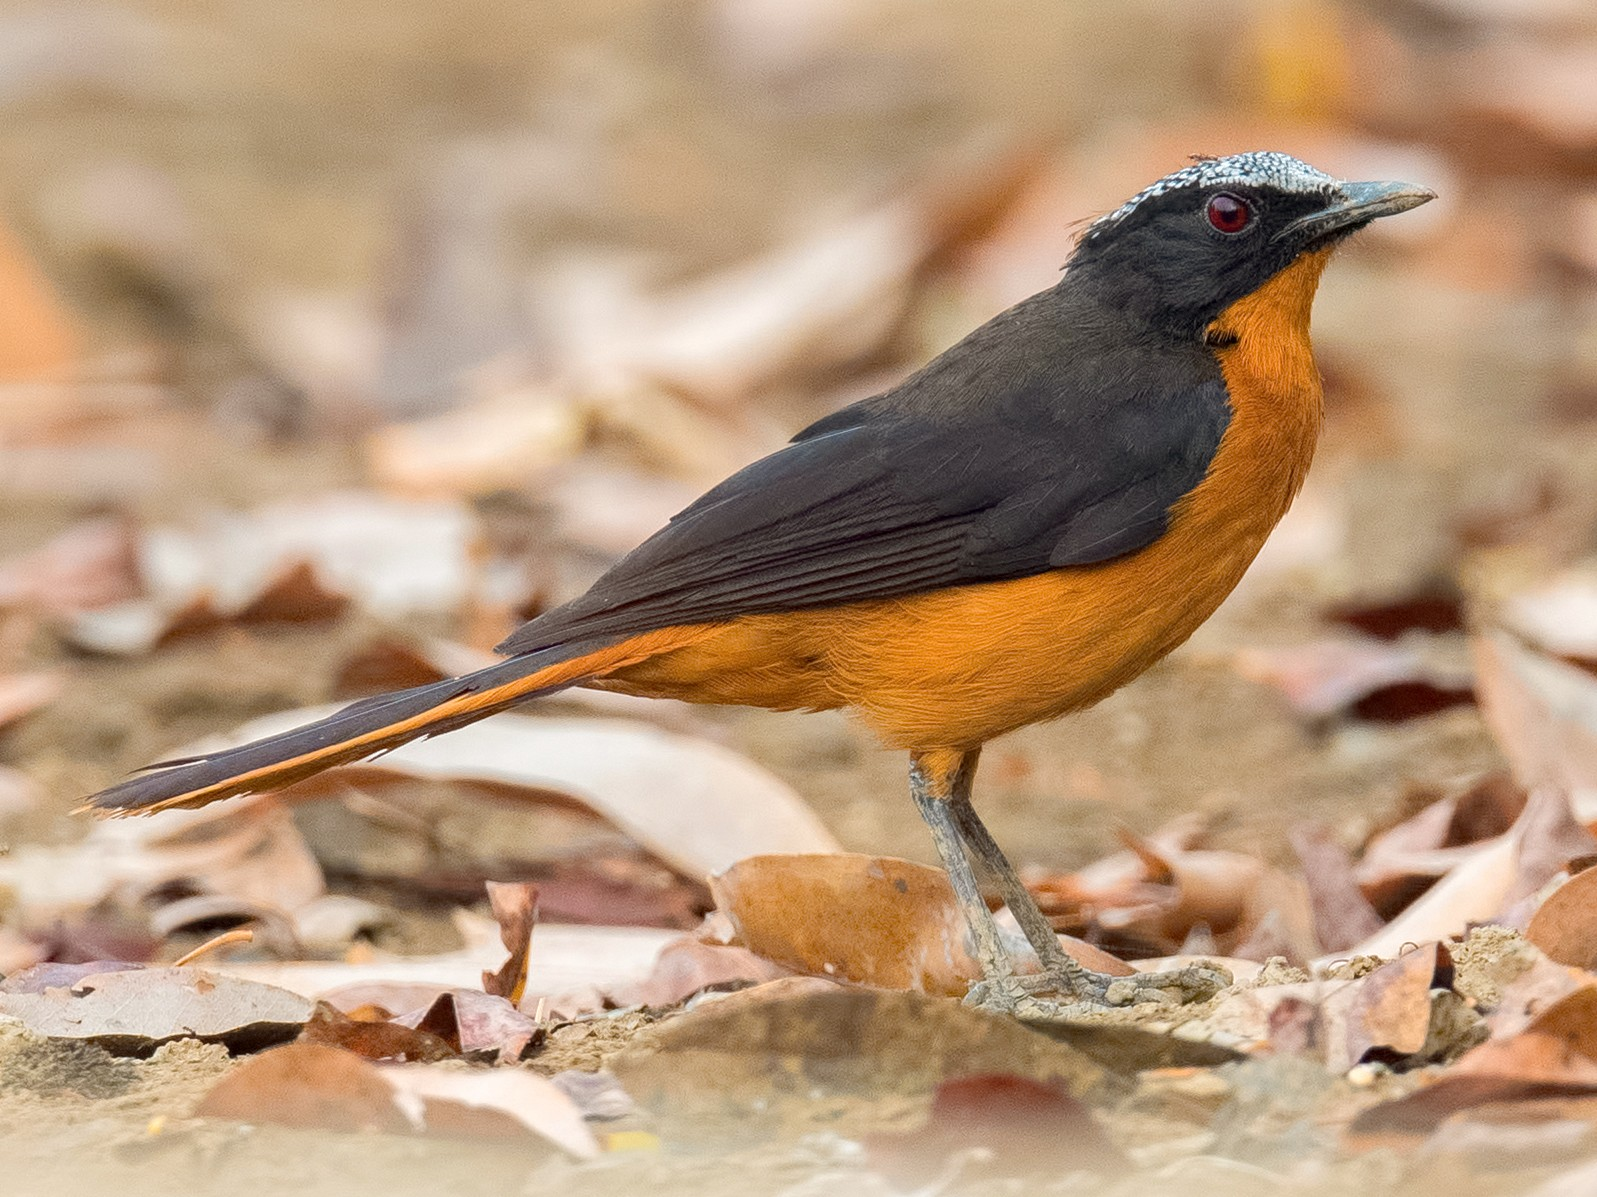 White-crowned Robin-Chat - Shailesh Pinto